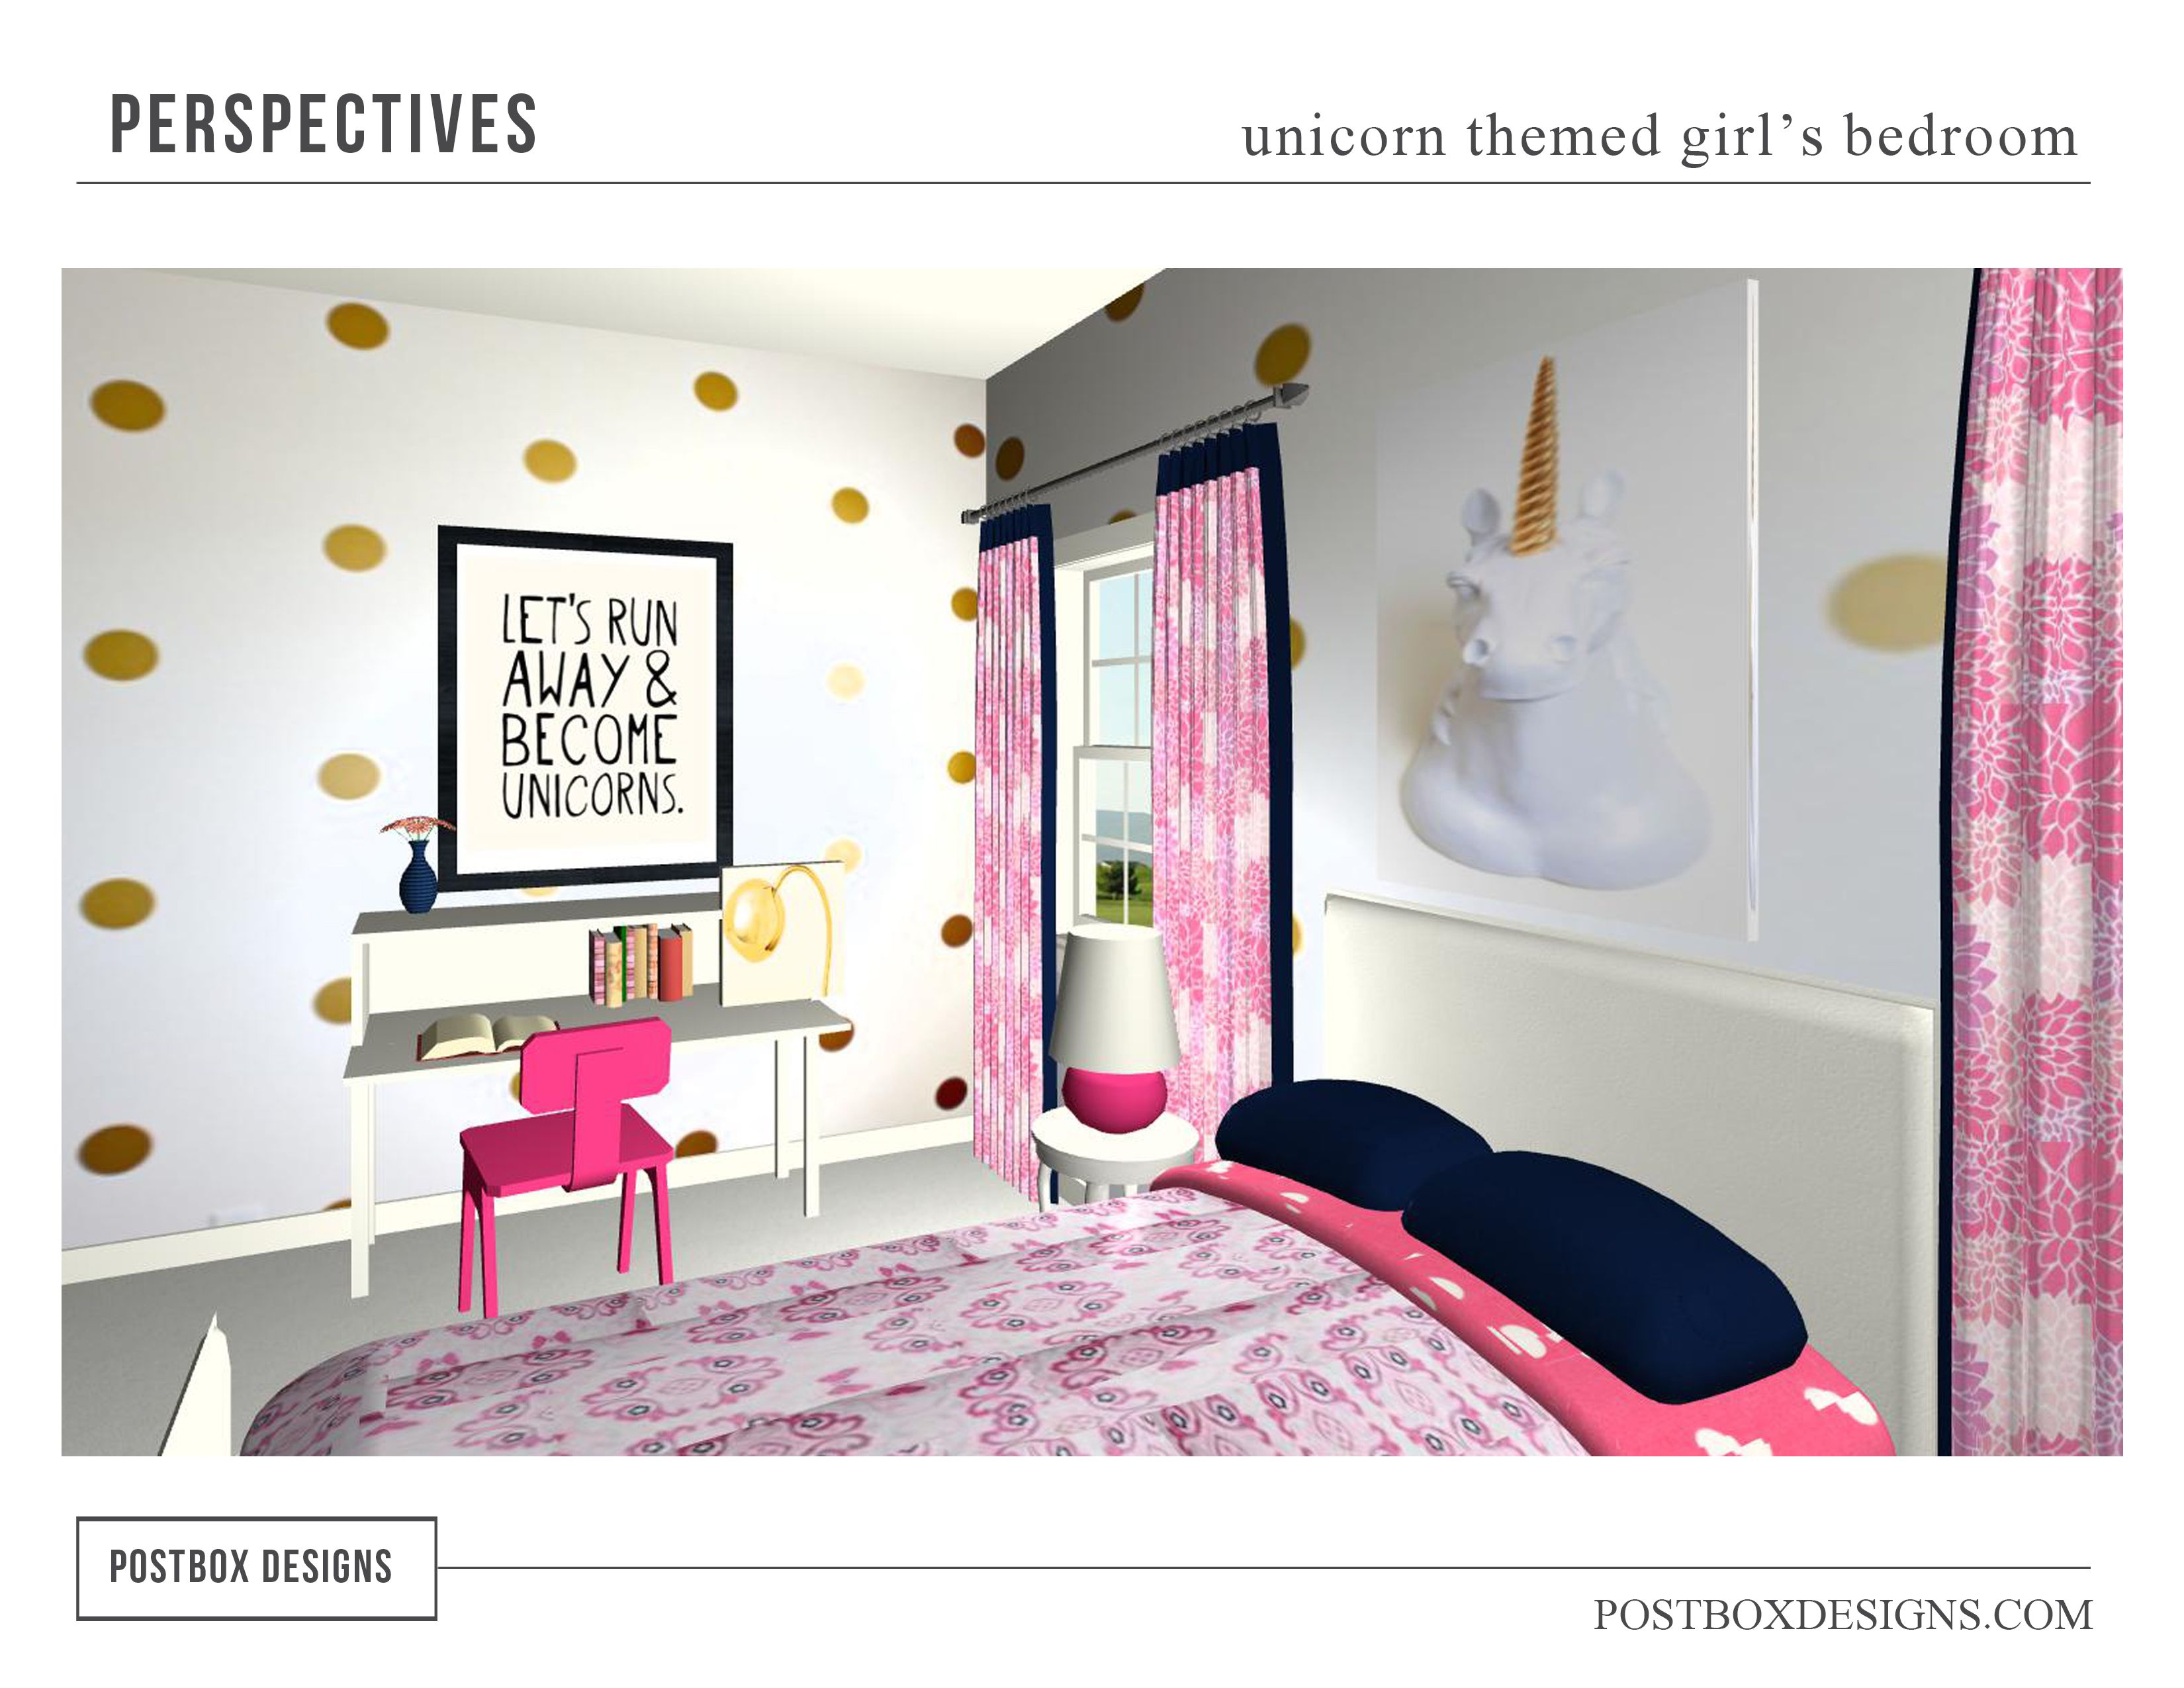 Unicorn Themed Little Girls Bedroom, Three Dimensional Perspective Drawing For